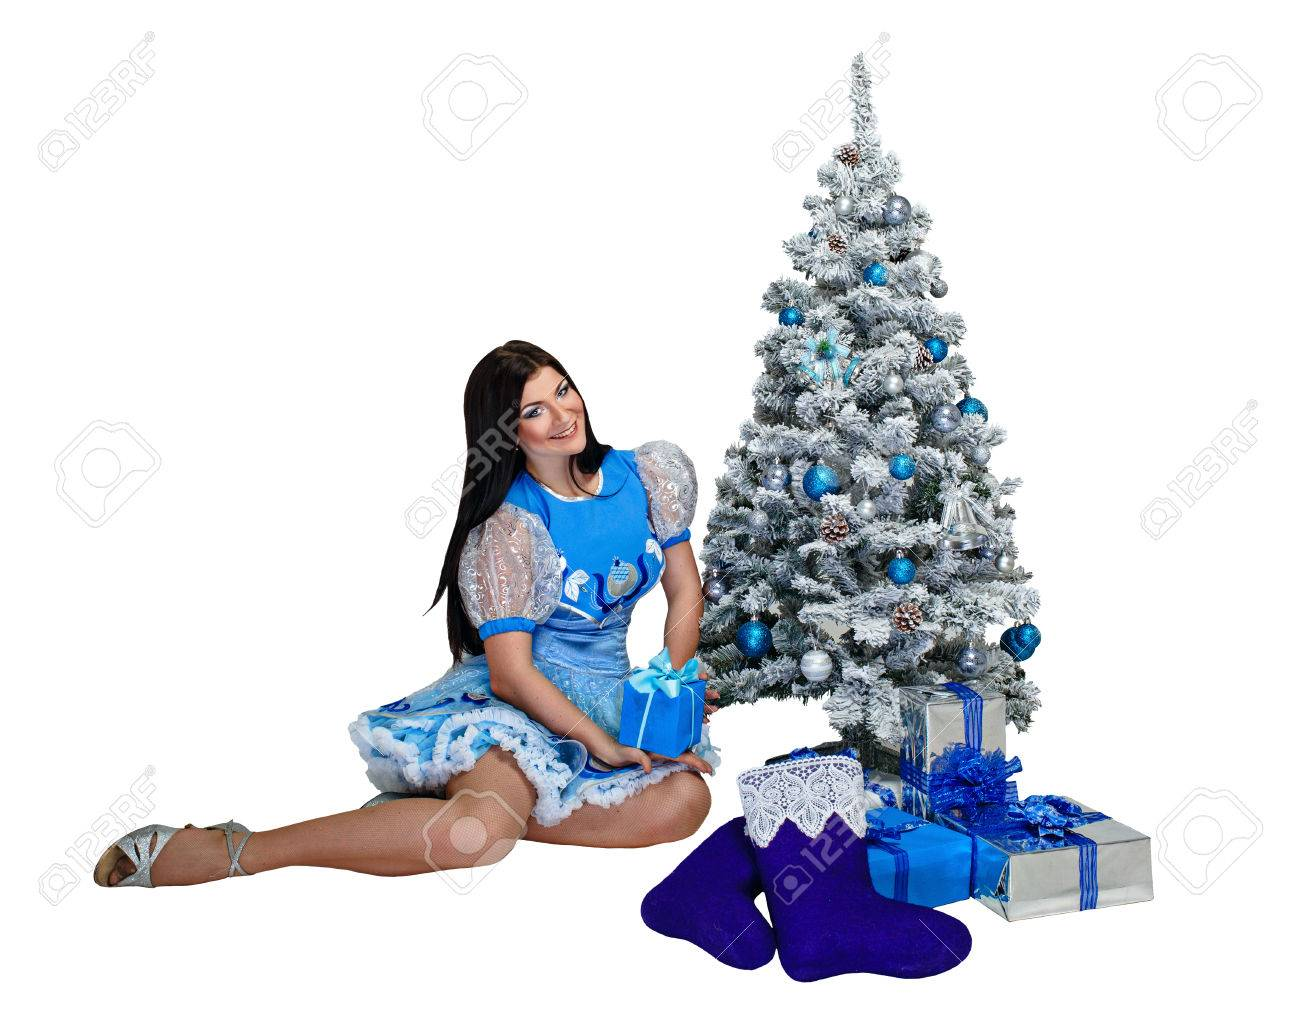 Attractive young girl sitting near Christmas tree and gifts Stock Photo - 24181091